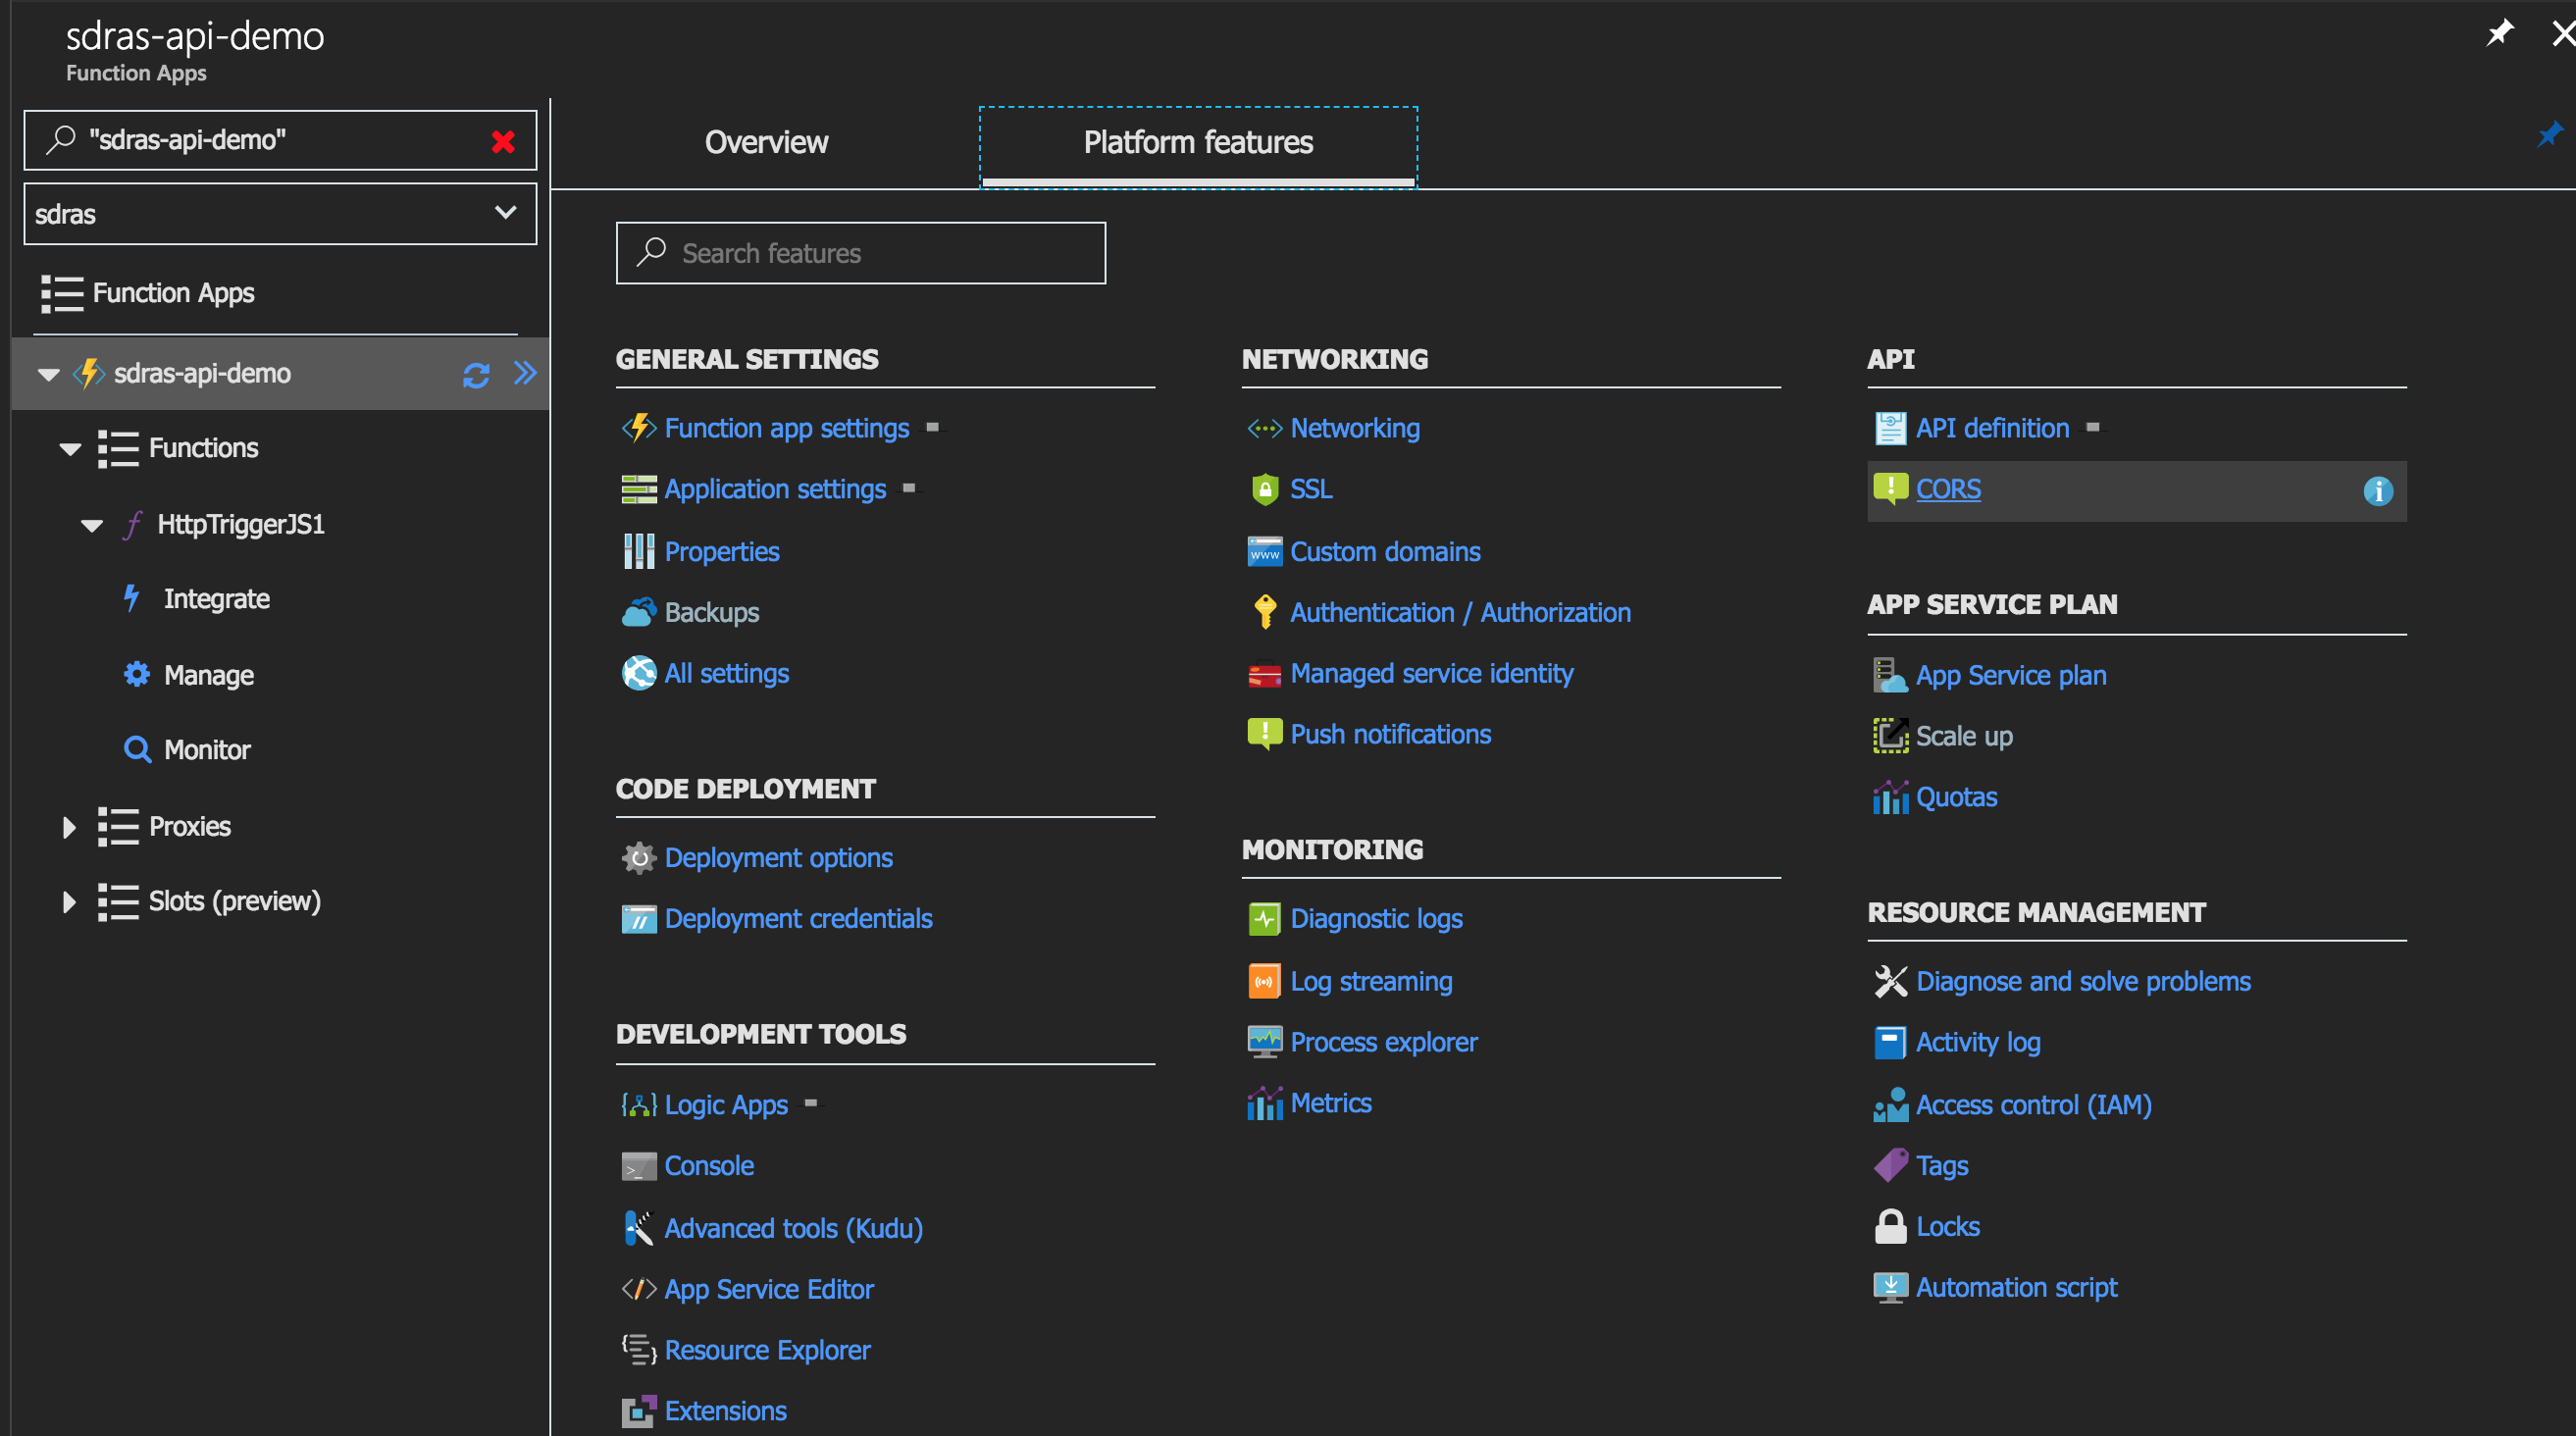 Showing where CORS is in the dashboard